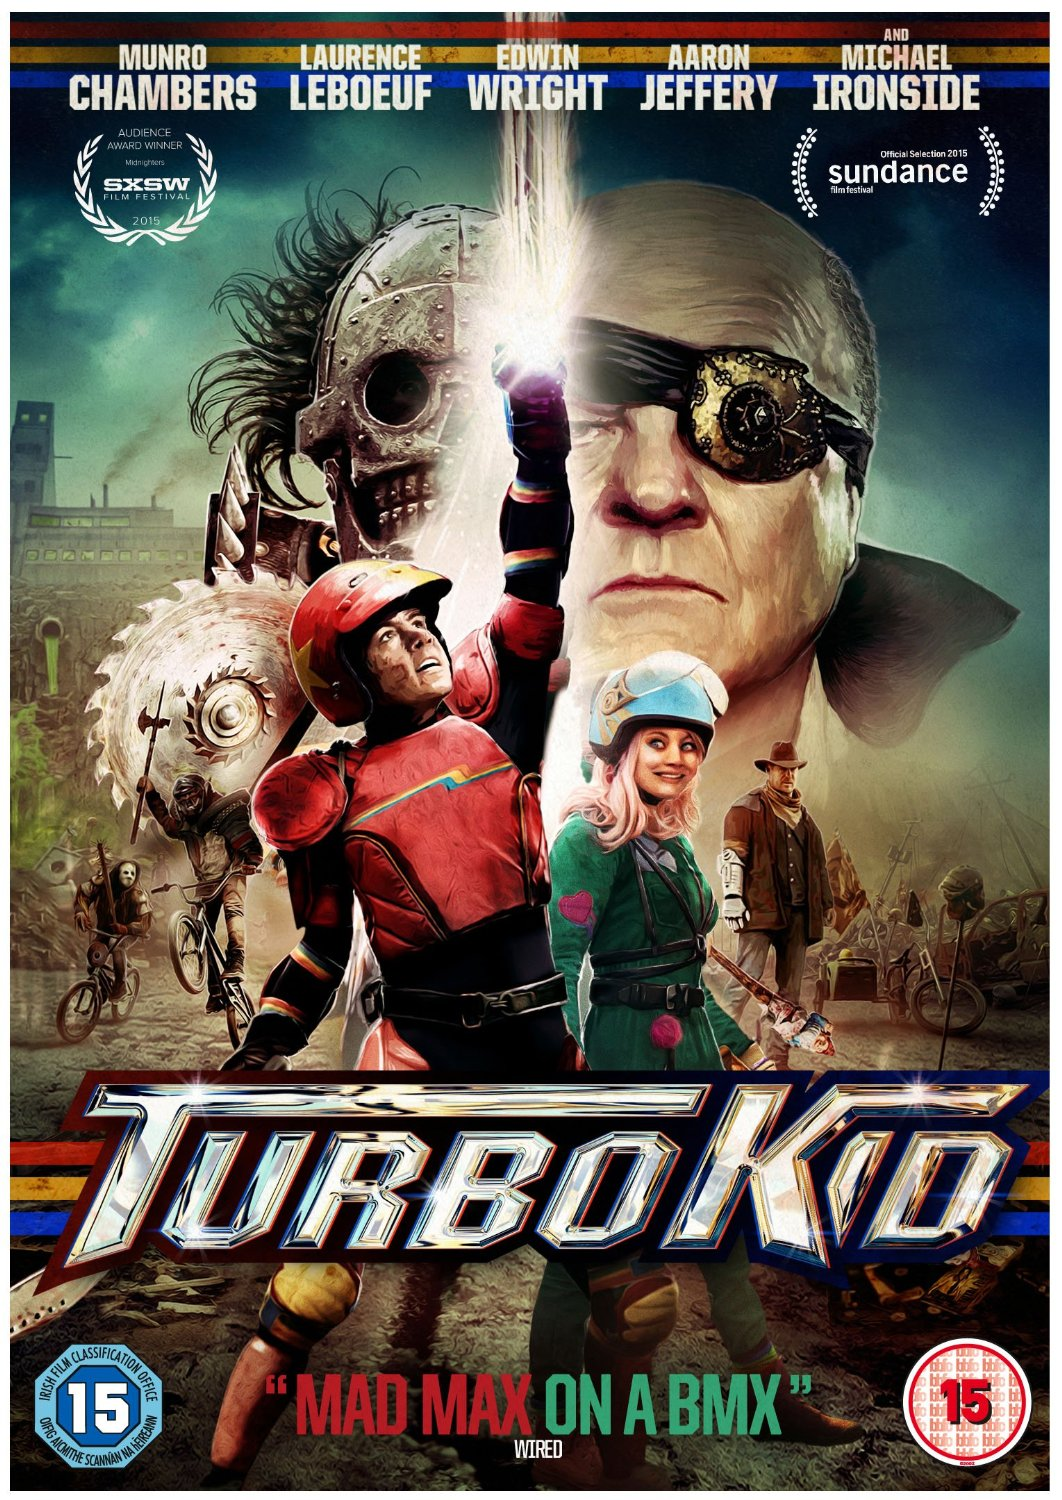 Turbo Kid Blu-ray review: a total blast